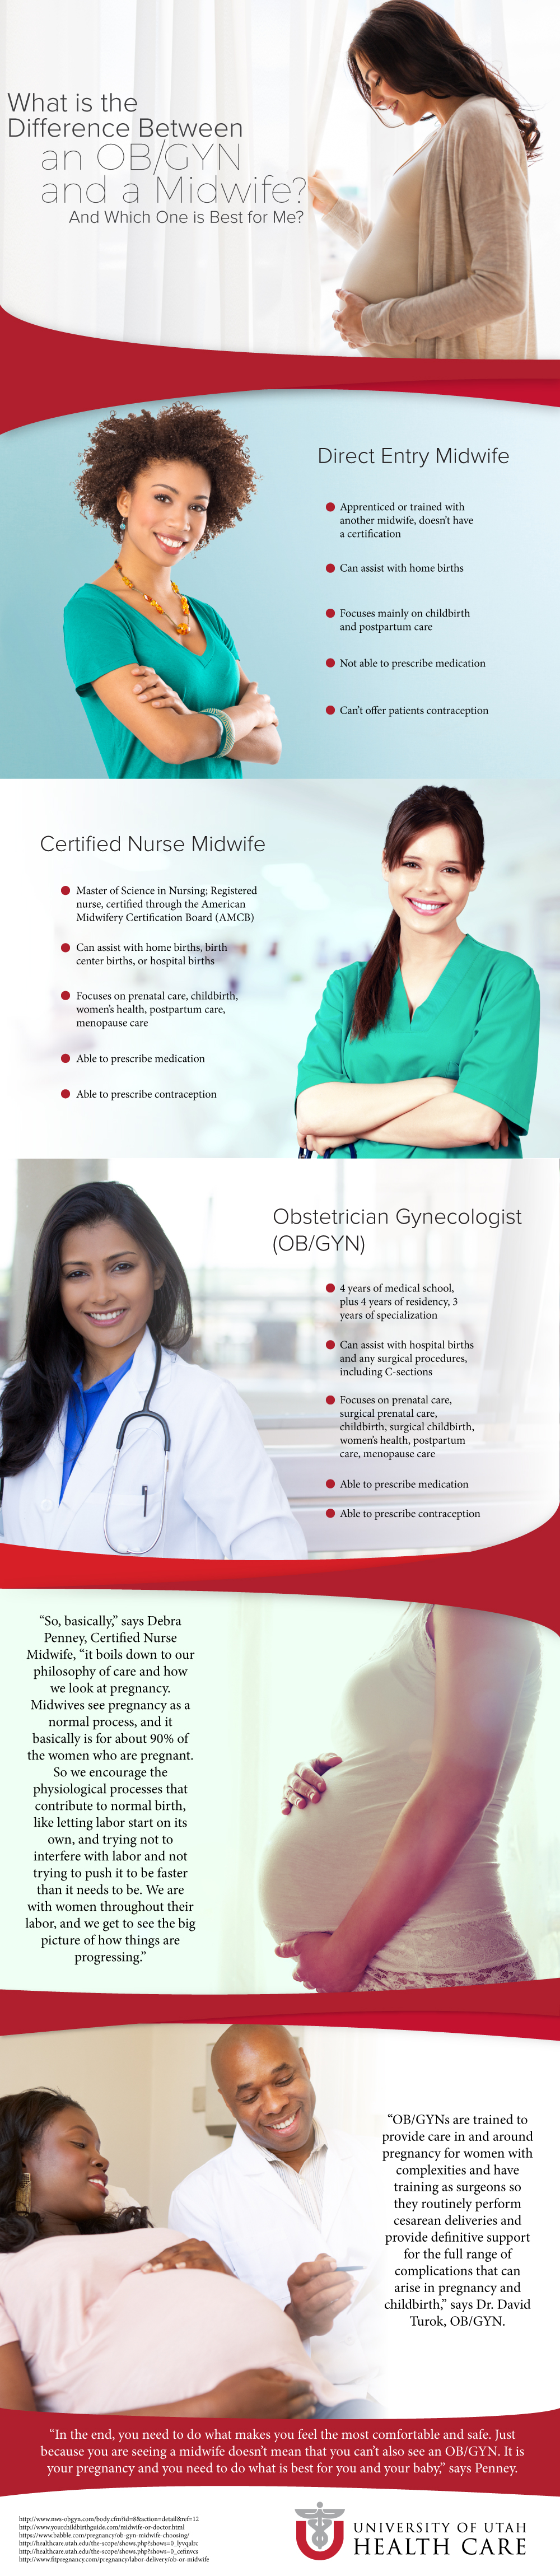 What Is the Difference Between an OB/GYN and a Midwife? | University